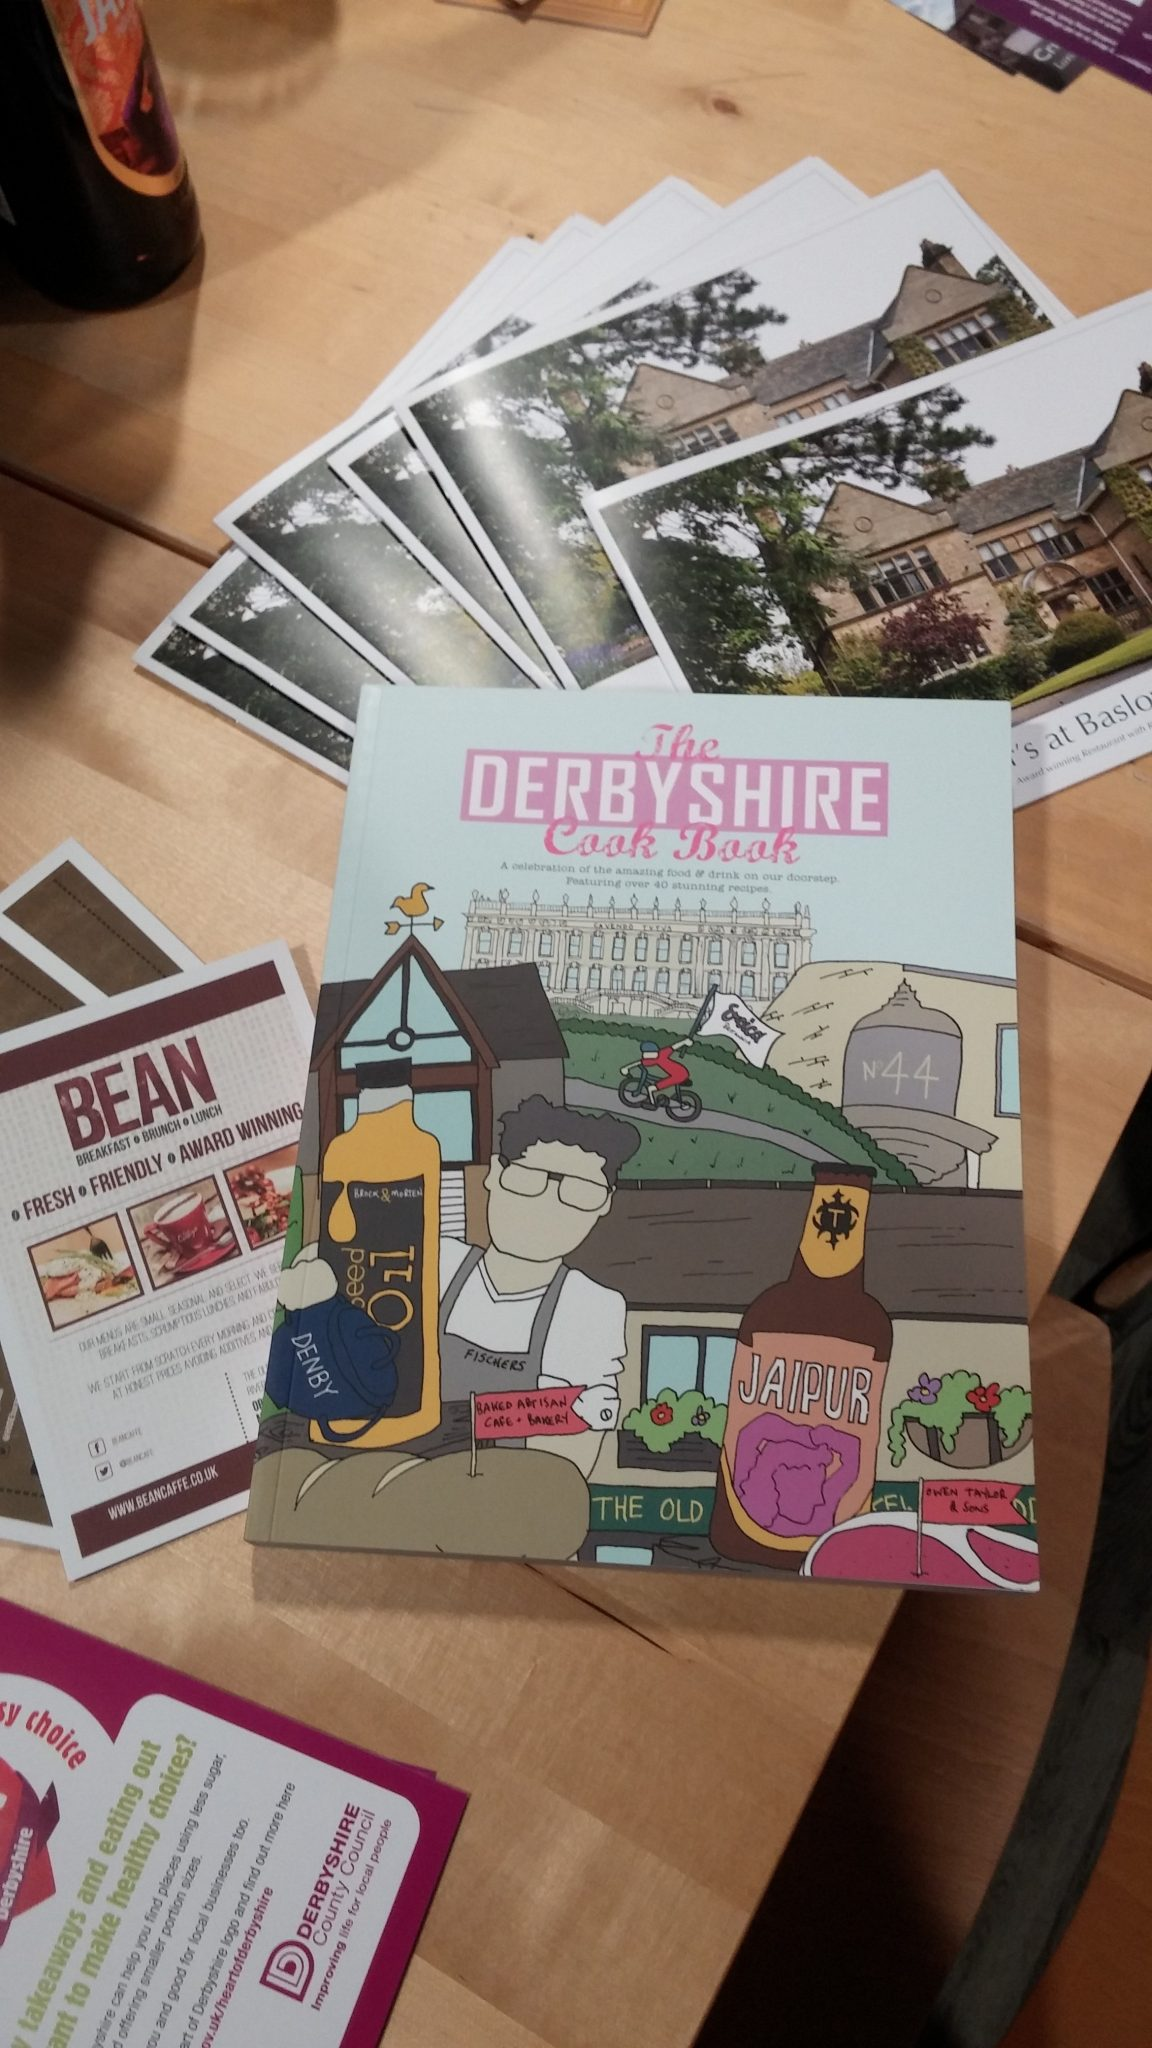 Derby BookCakeClub, Cookbook Launch & a whole bunch more!